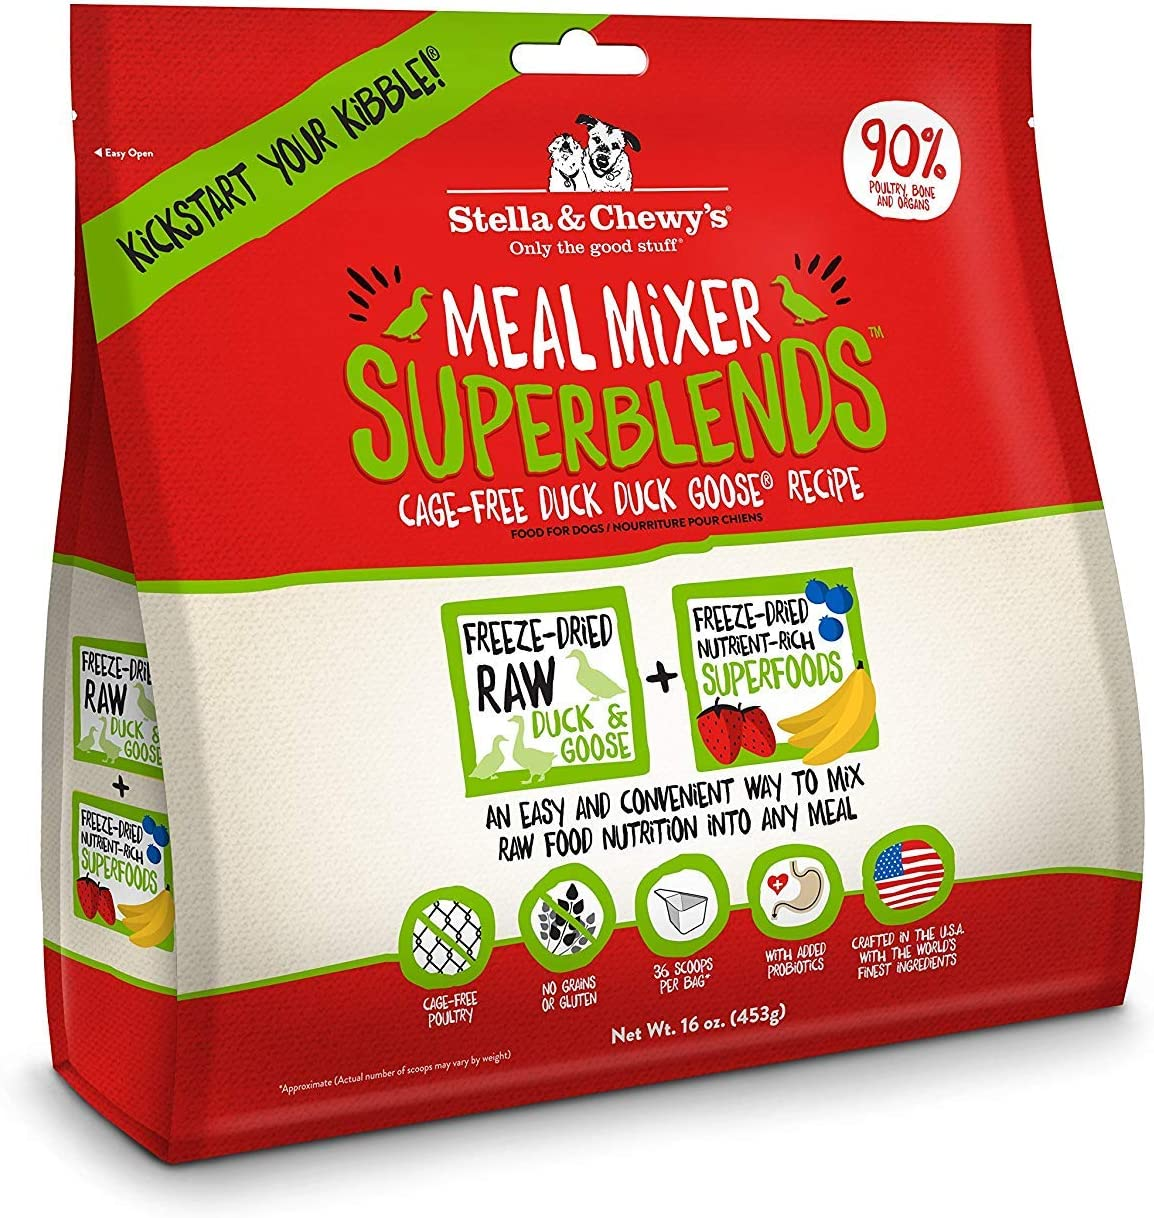 Stella & Chewy's Freeze-Dried Raw Meal Mixer SuperBlends Cage-Free Duck Duck Goose Recipe Grain-Free Dog Food Topper, 32 oz bag